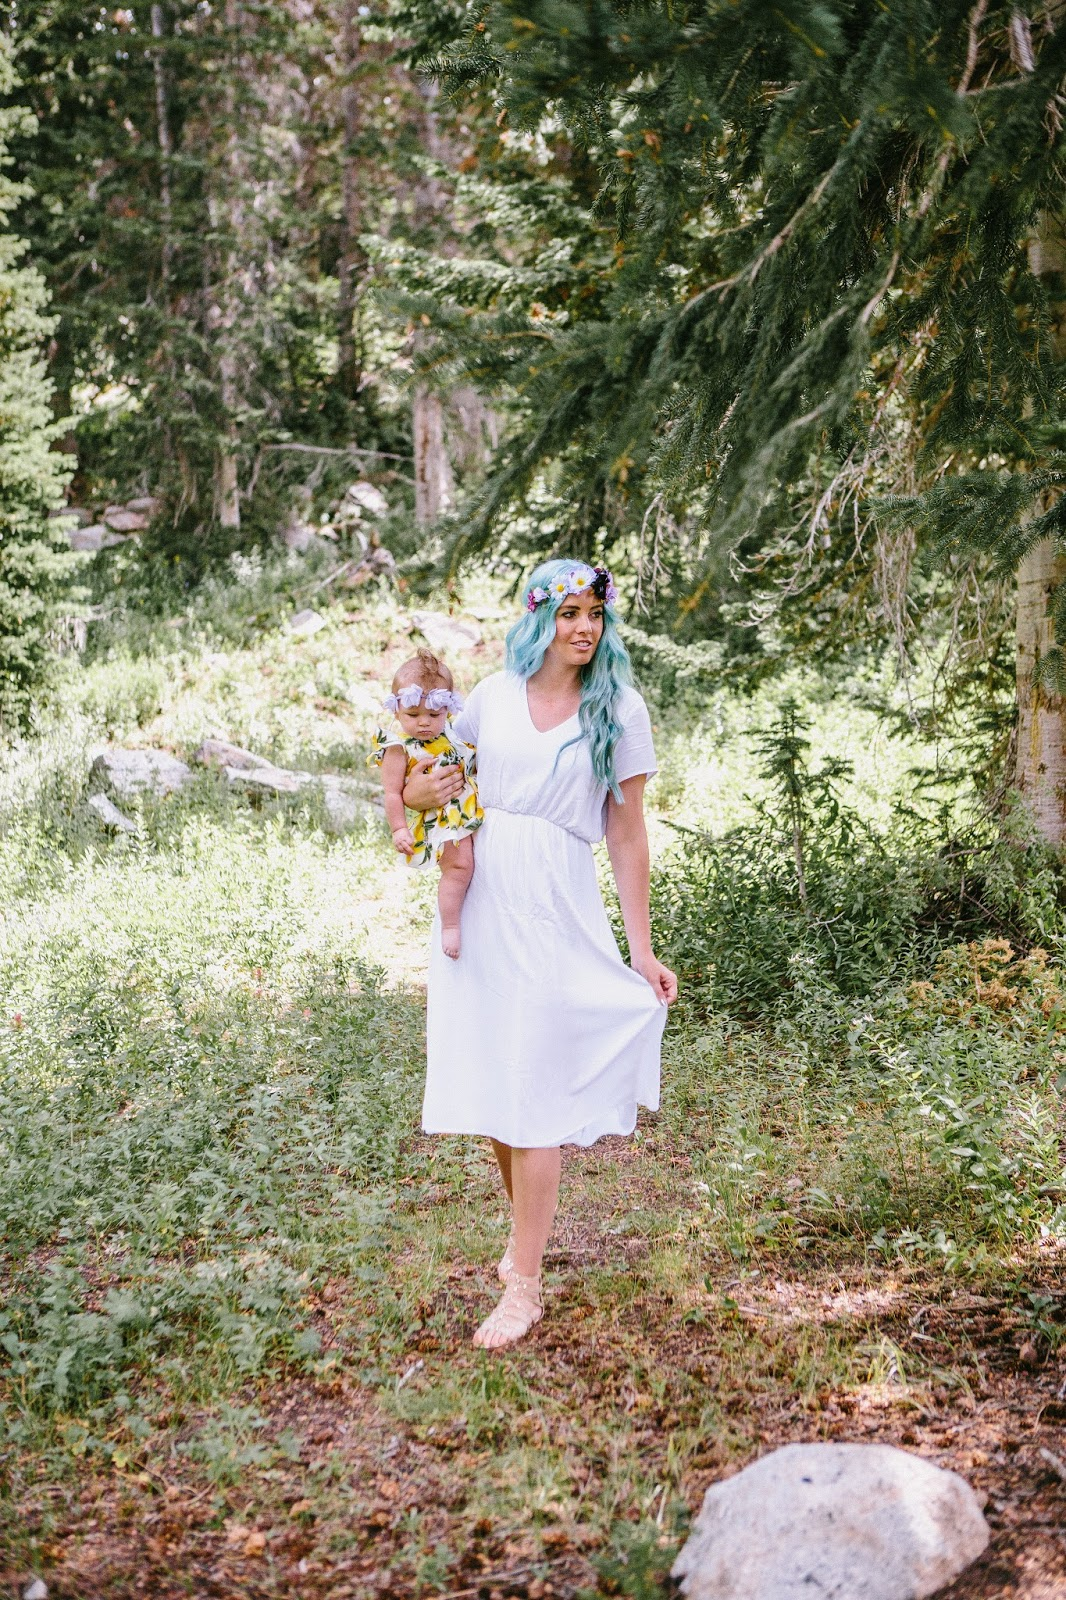 The High Pines, Utah Fashion Blogger, Mountain Photoshoot